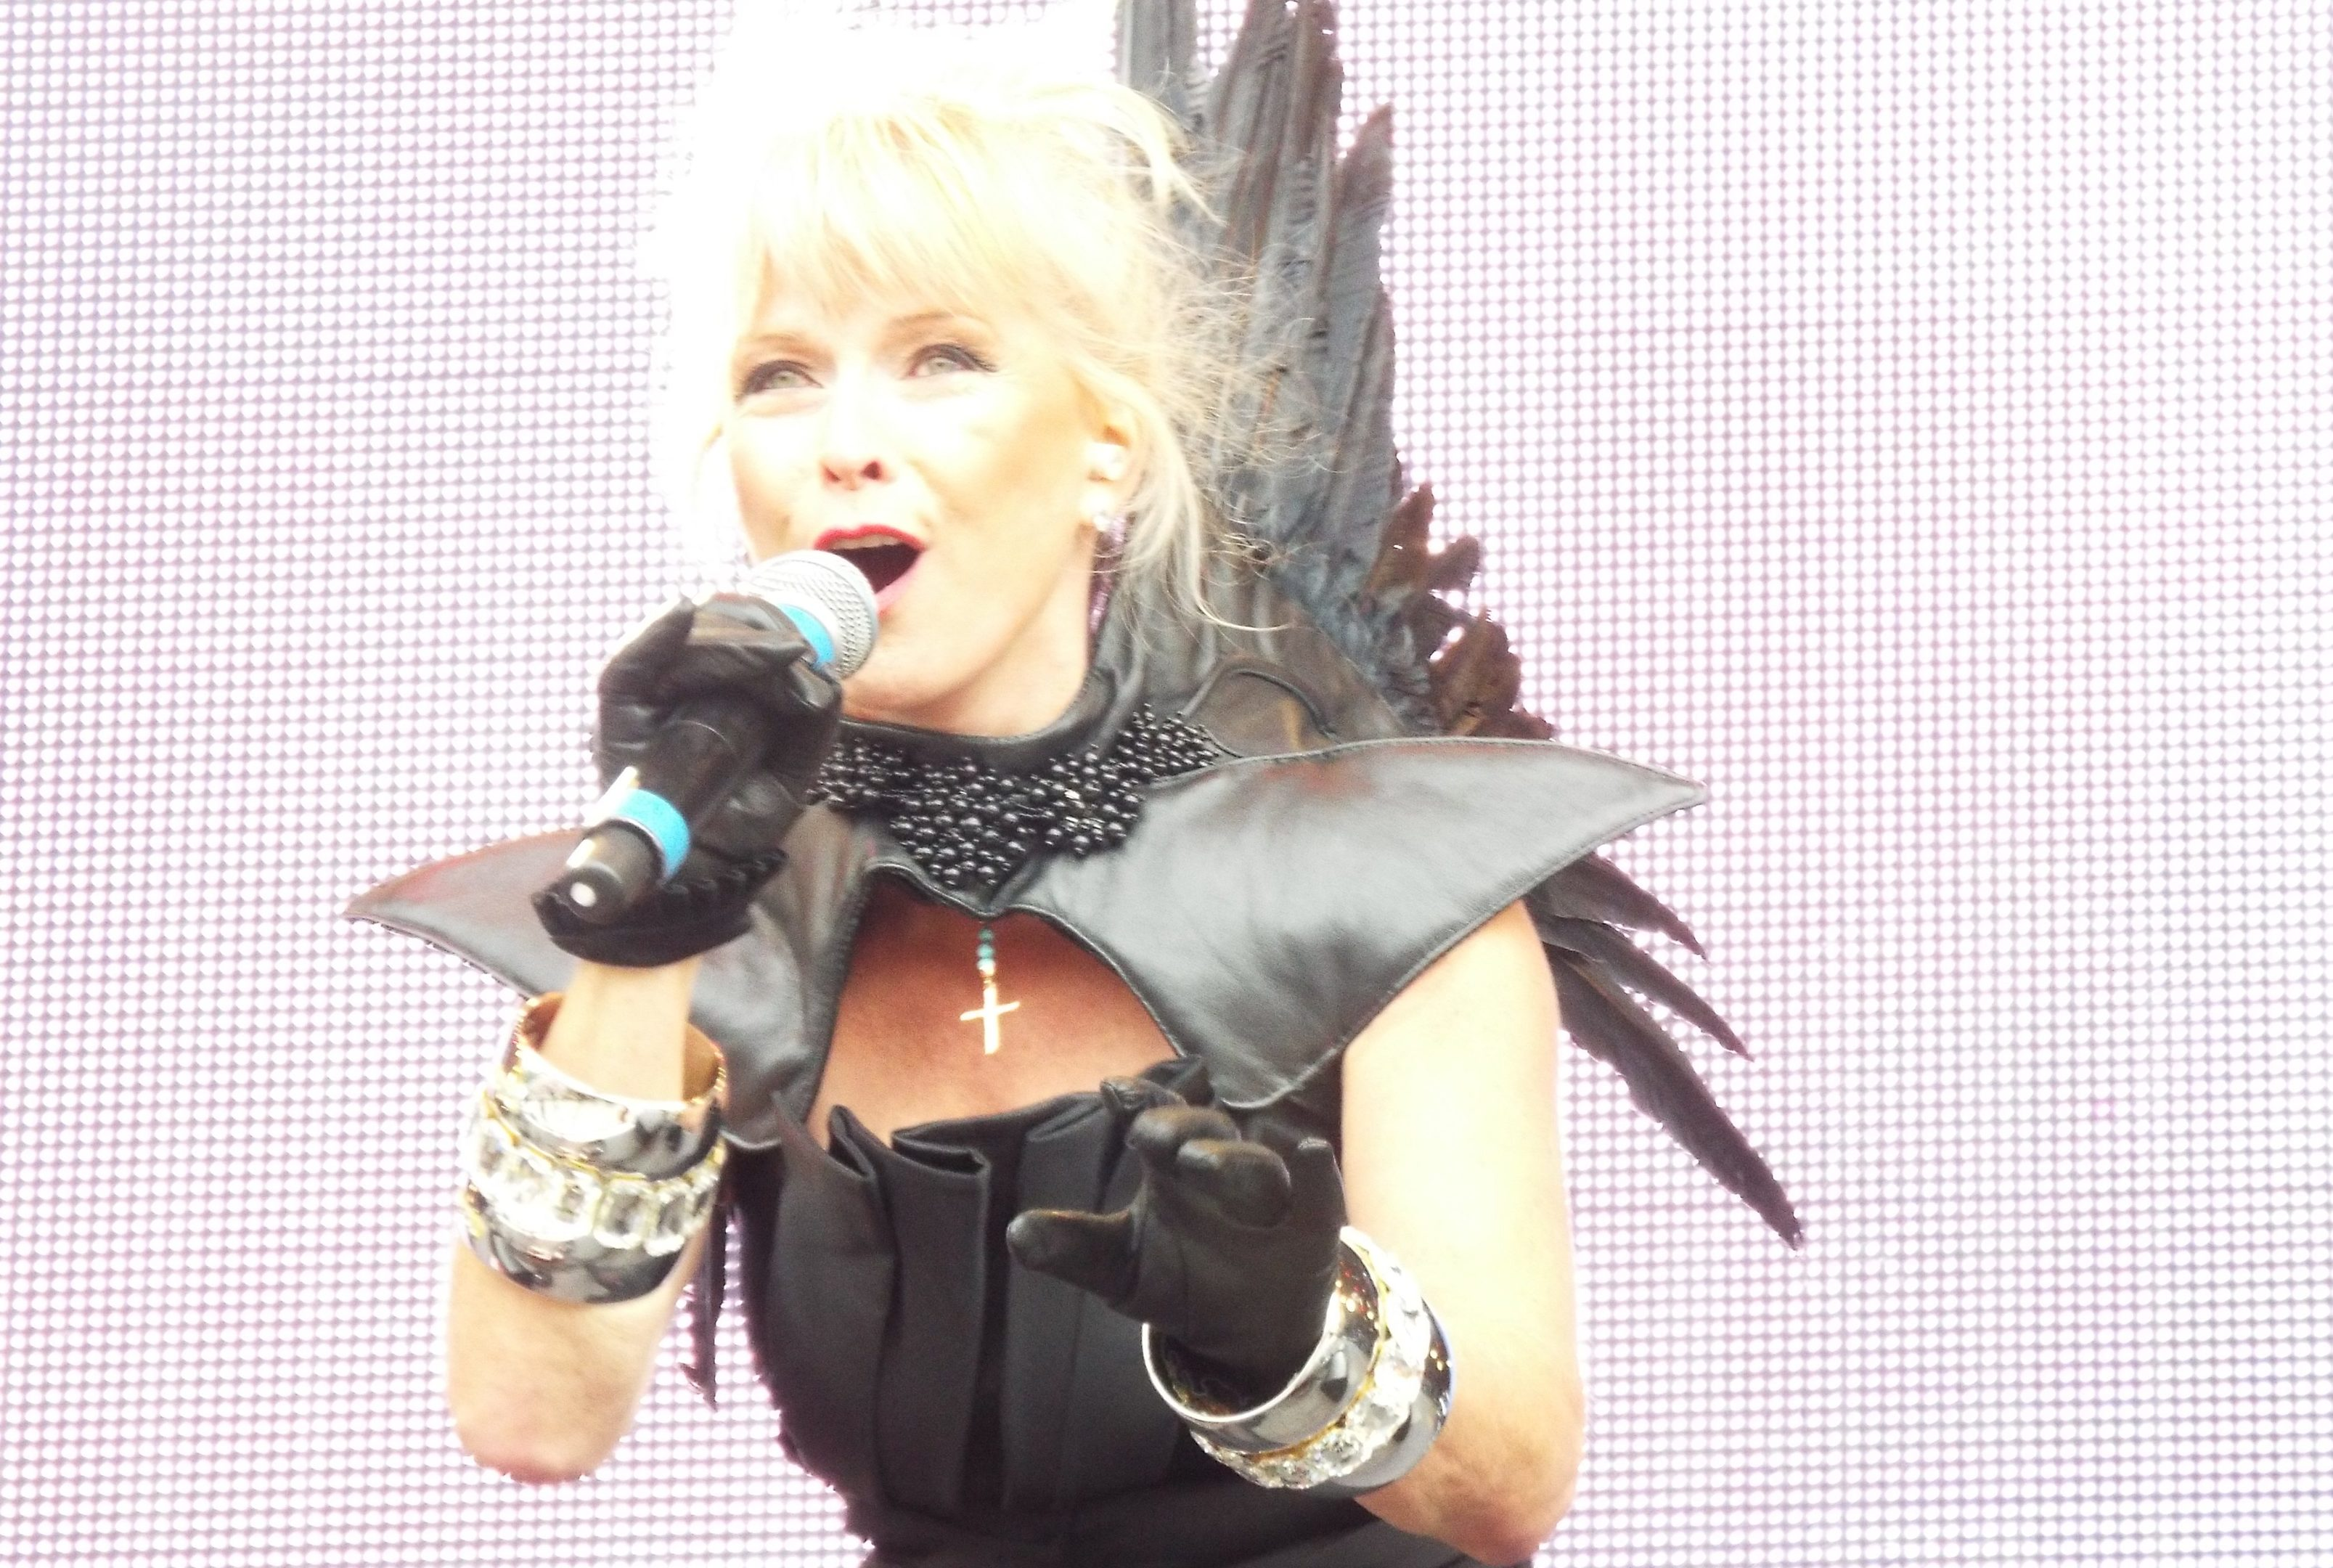 Pop star Toyah Willcox has backed Perth's bid for City of Culture status.